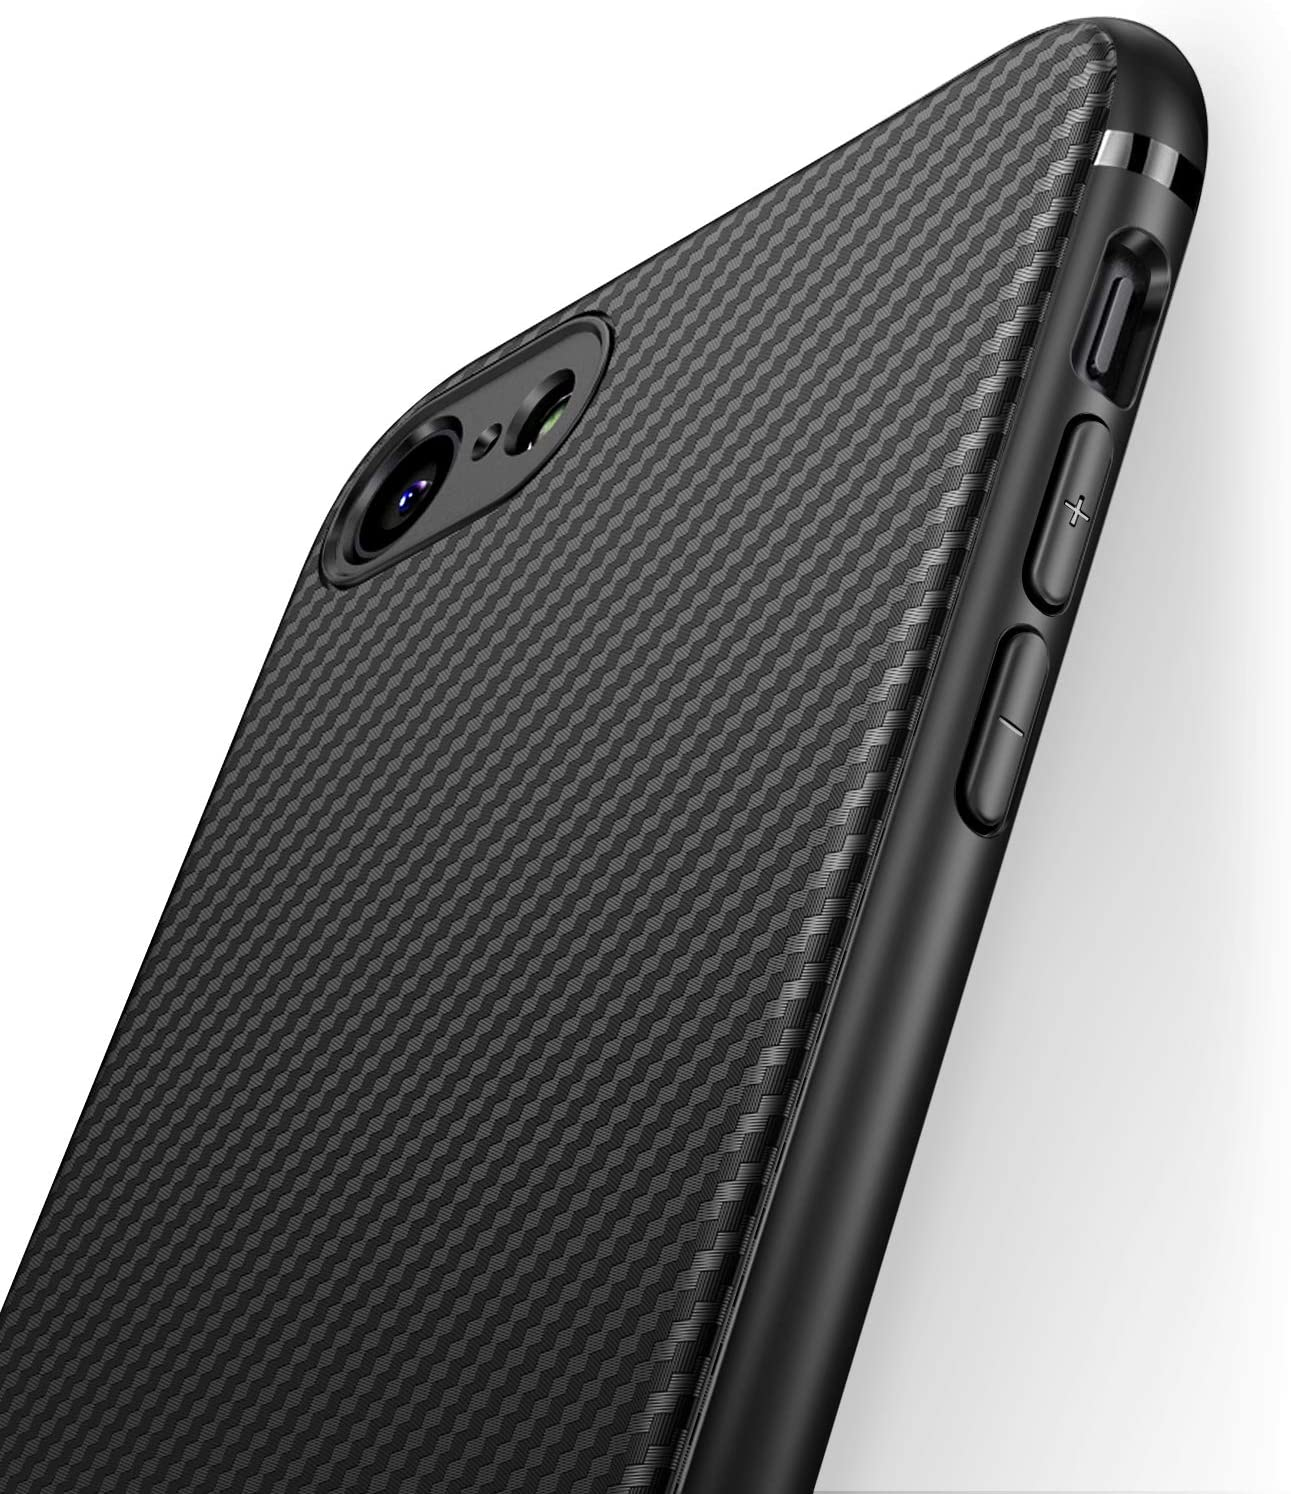 J Jecent iPhone 7 Case iPhone 8 Case iPhone SE 2nd Generation Case 2020 [Carbon Fiber Texture Design] Durable Light Shockproof Cover Slim Fit Soft TPU Silicone Gel Bumper Case 4.7 inch - Black